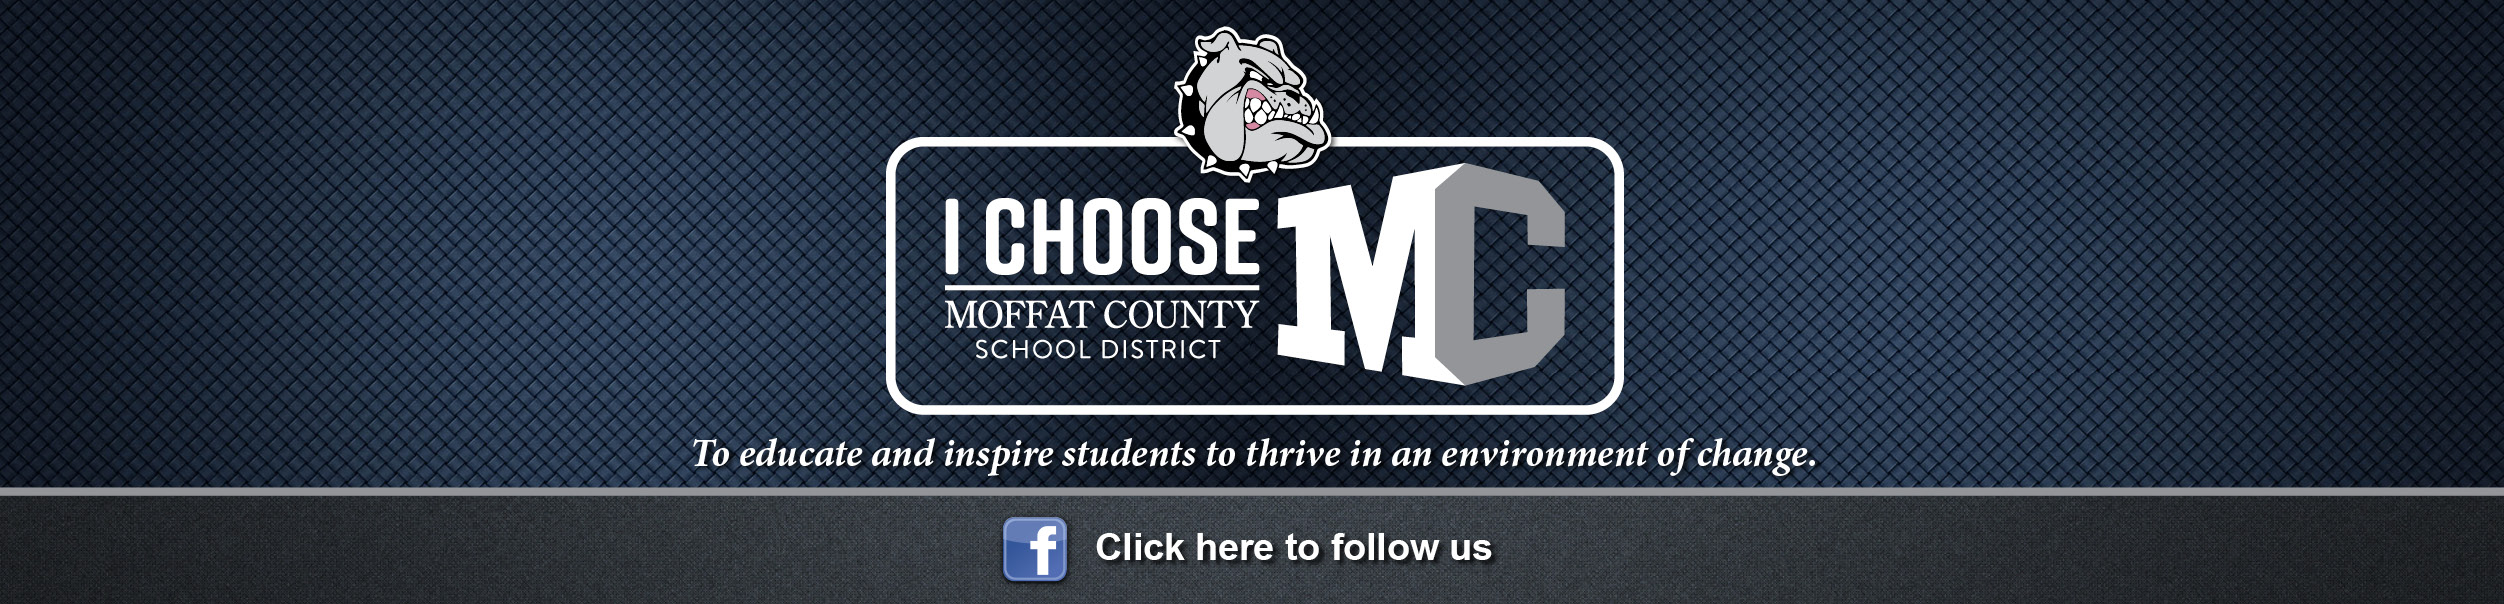 Welcome to Moffat County School District